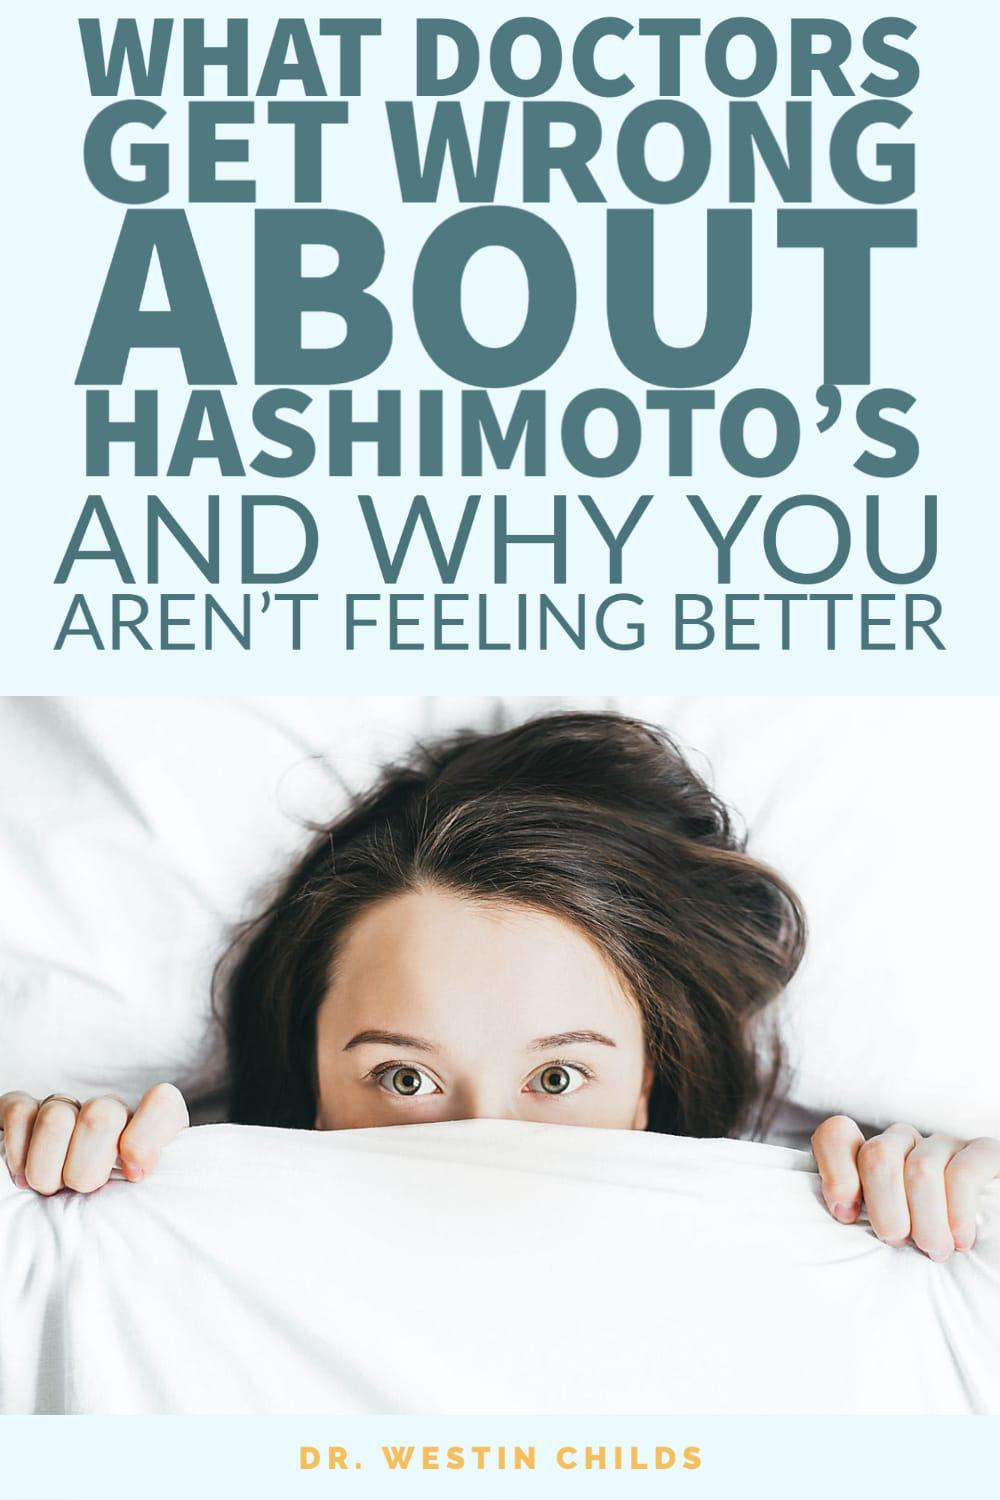 what doctors get wrong about hashimoto's